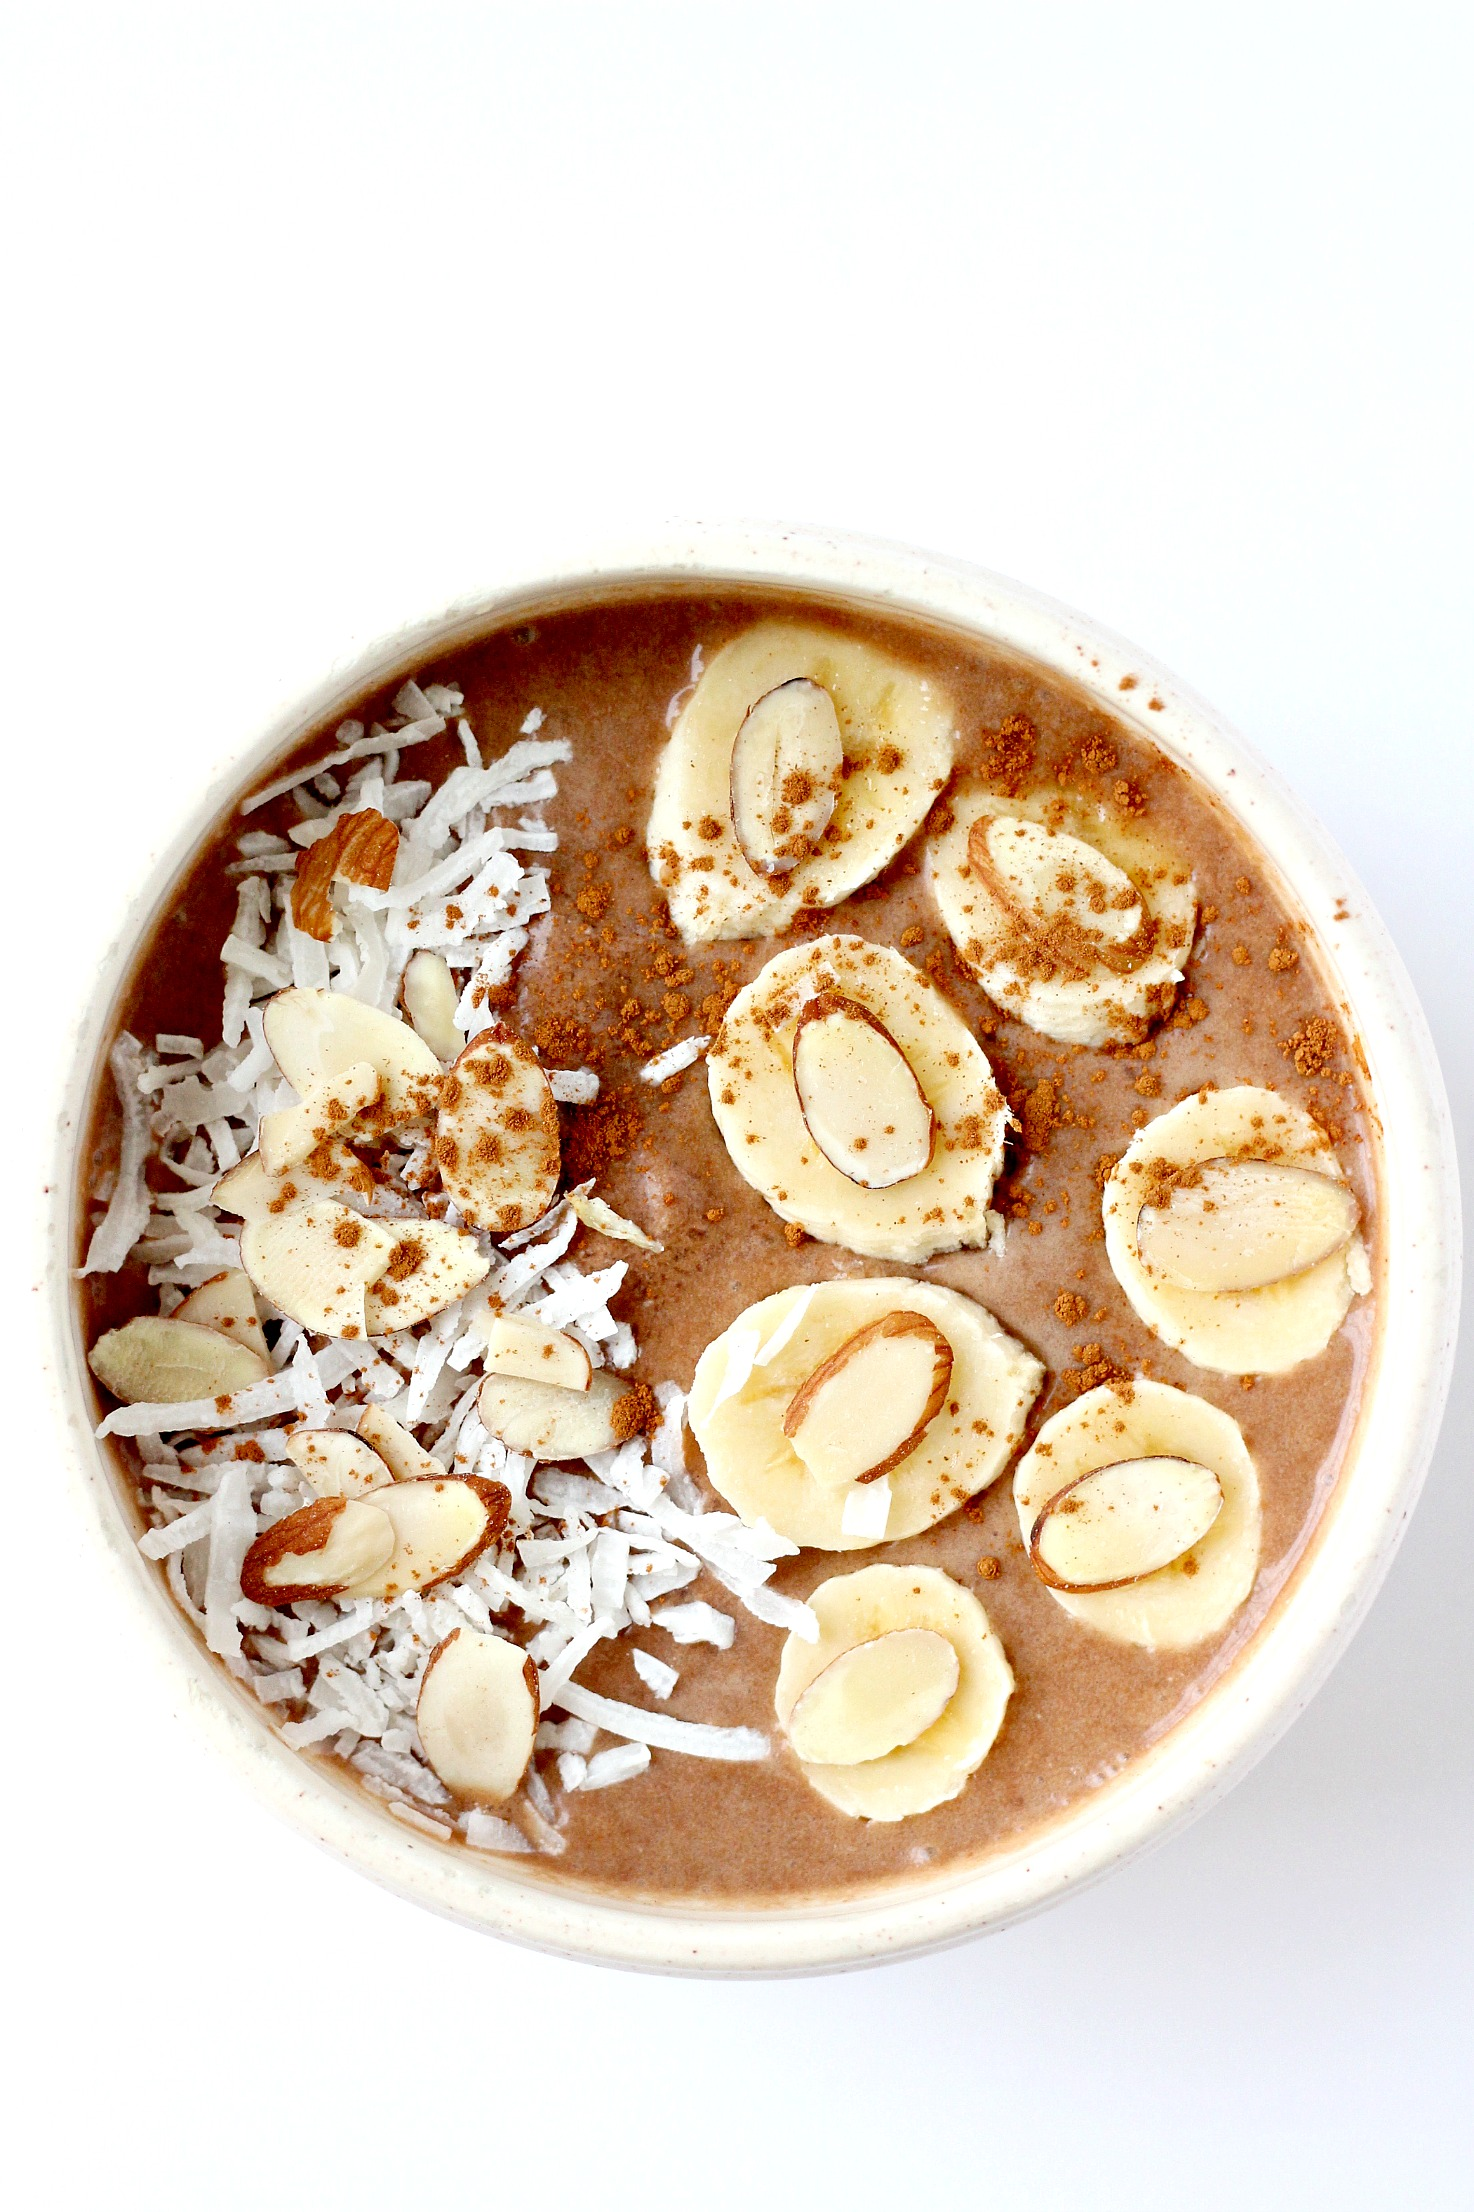 Paleo Smoothie Bowl (Chocolate)